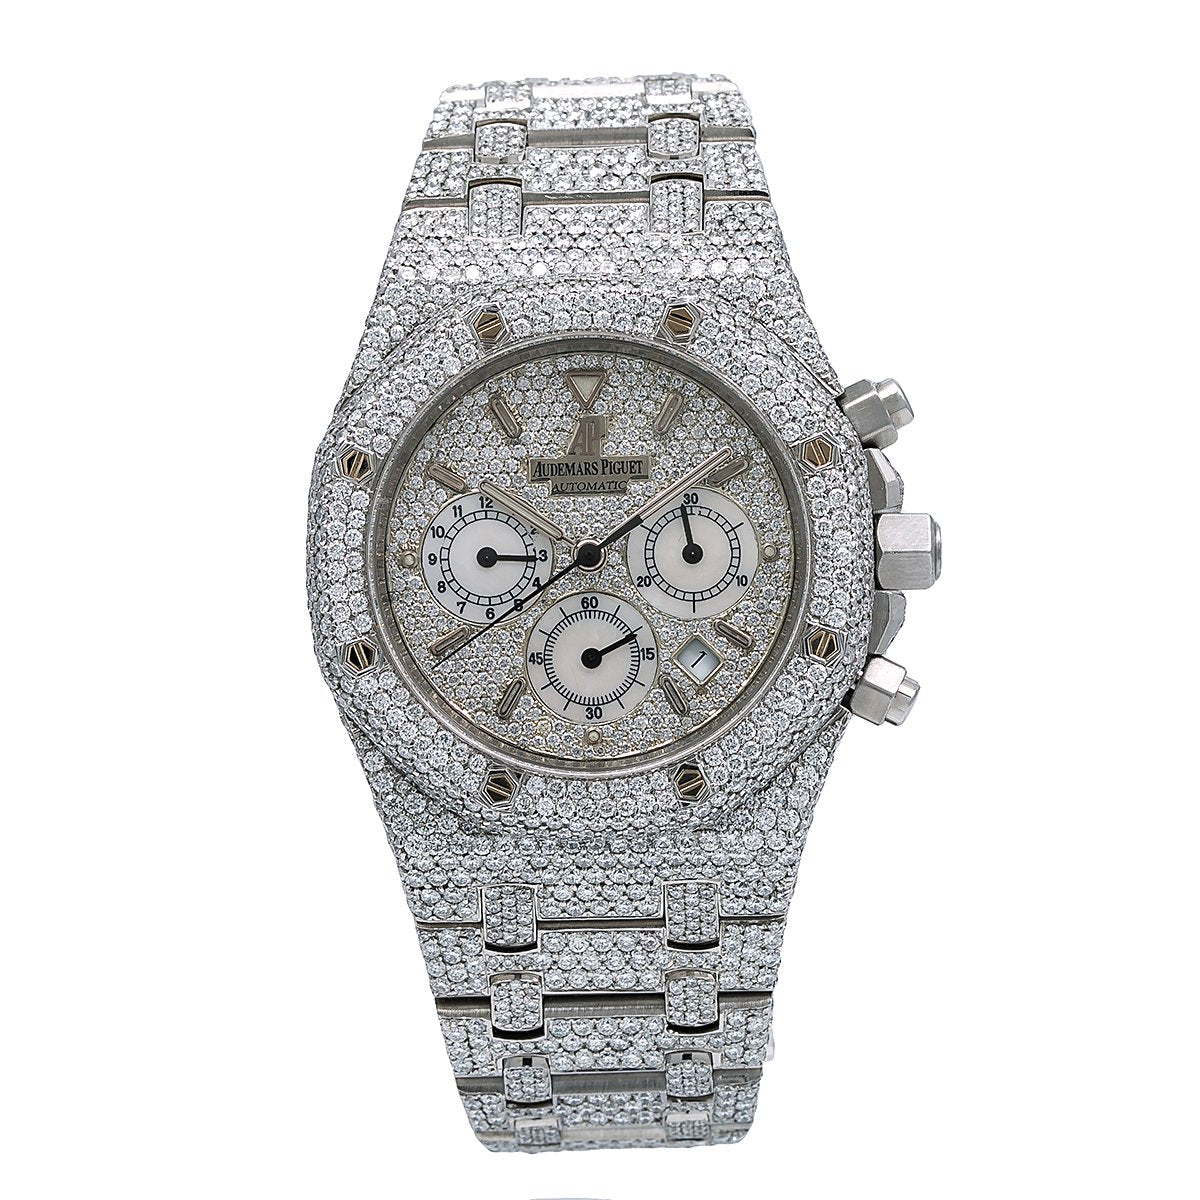 Audemars Piguet Royal Oak Chronograph 25860ST.OO.1110ST.05 39MM Silver Diamond Dial With 23.75 CT Diamonds